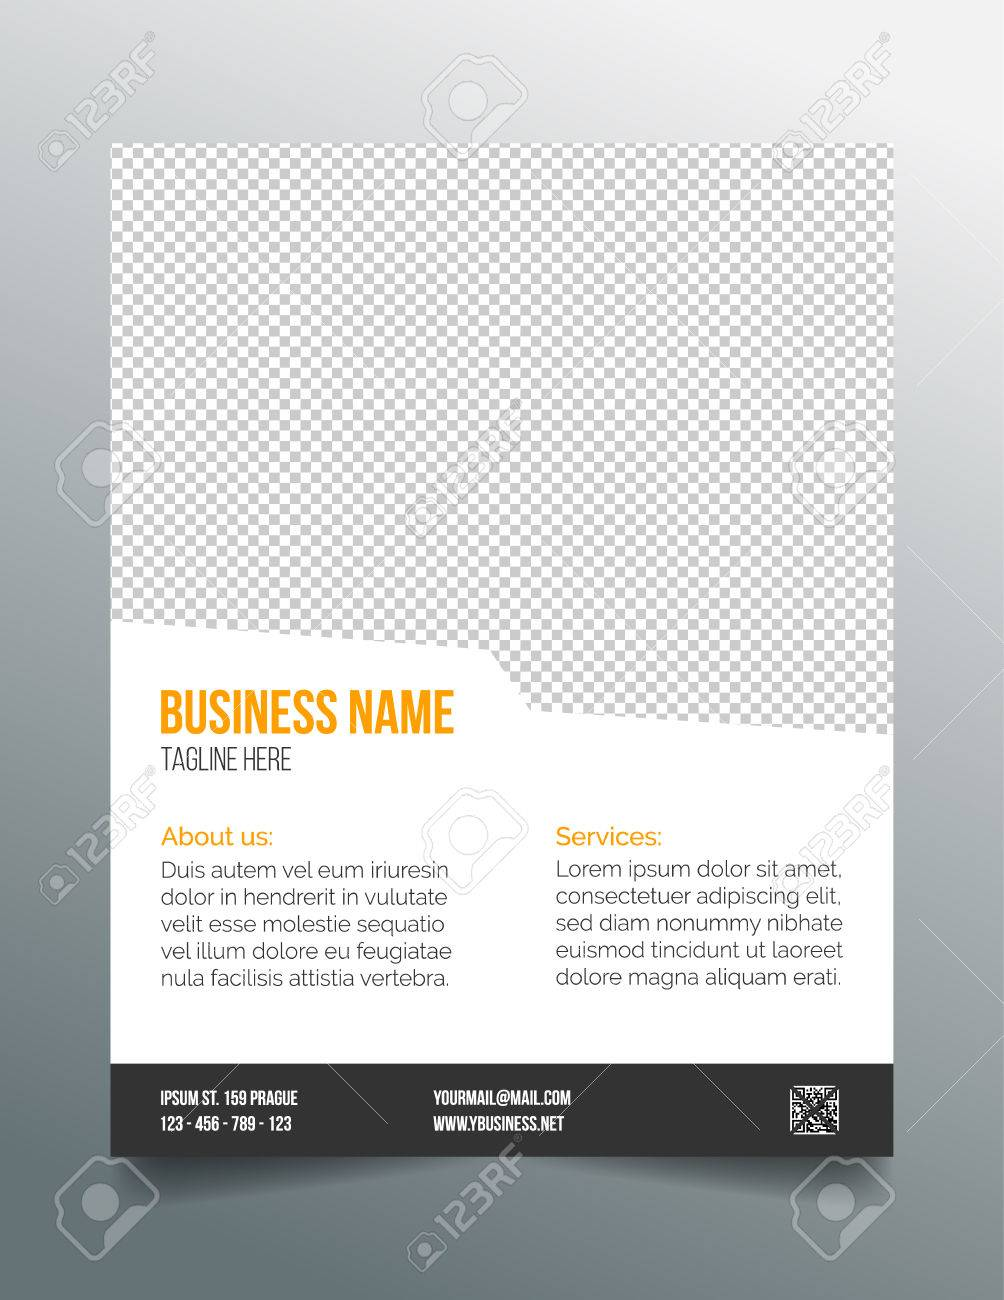 business poster template simple clean design royalty business poster template simple clean design stock vector 38889445